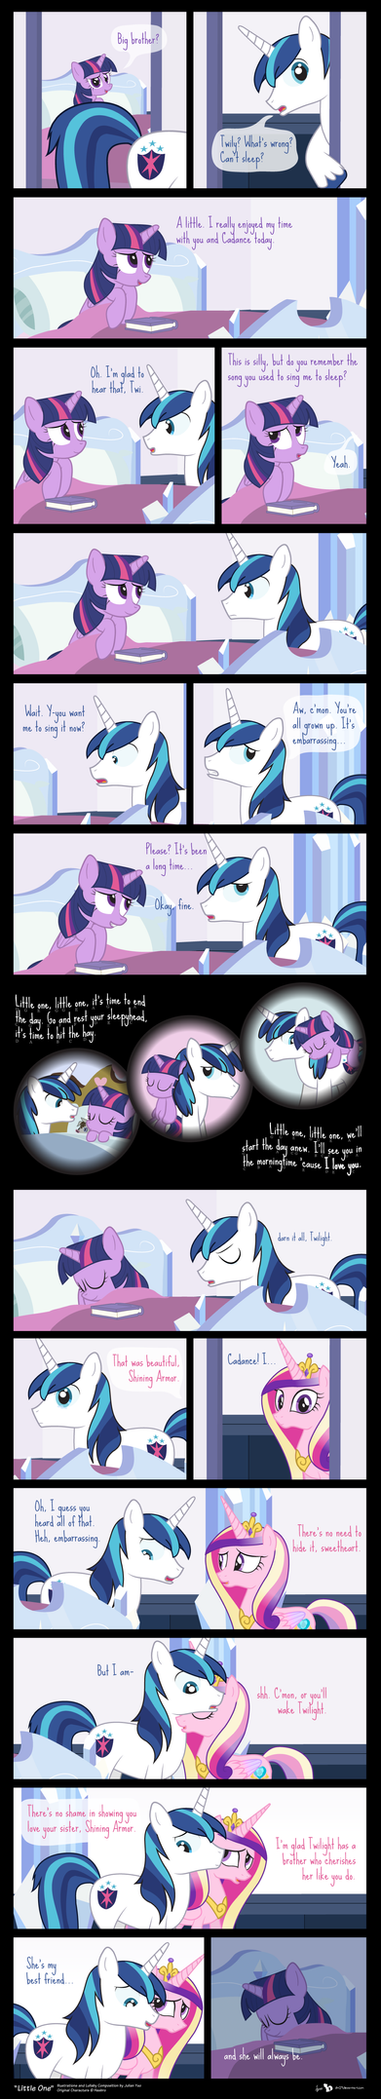 Comic Block: Little One by dm29